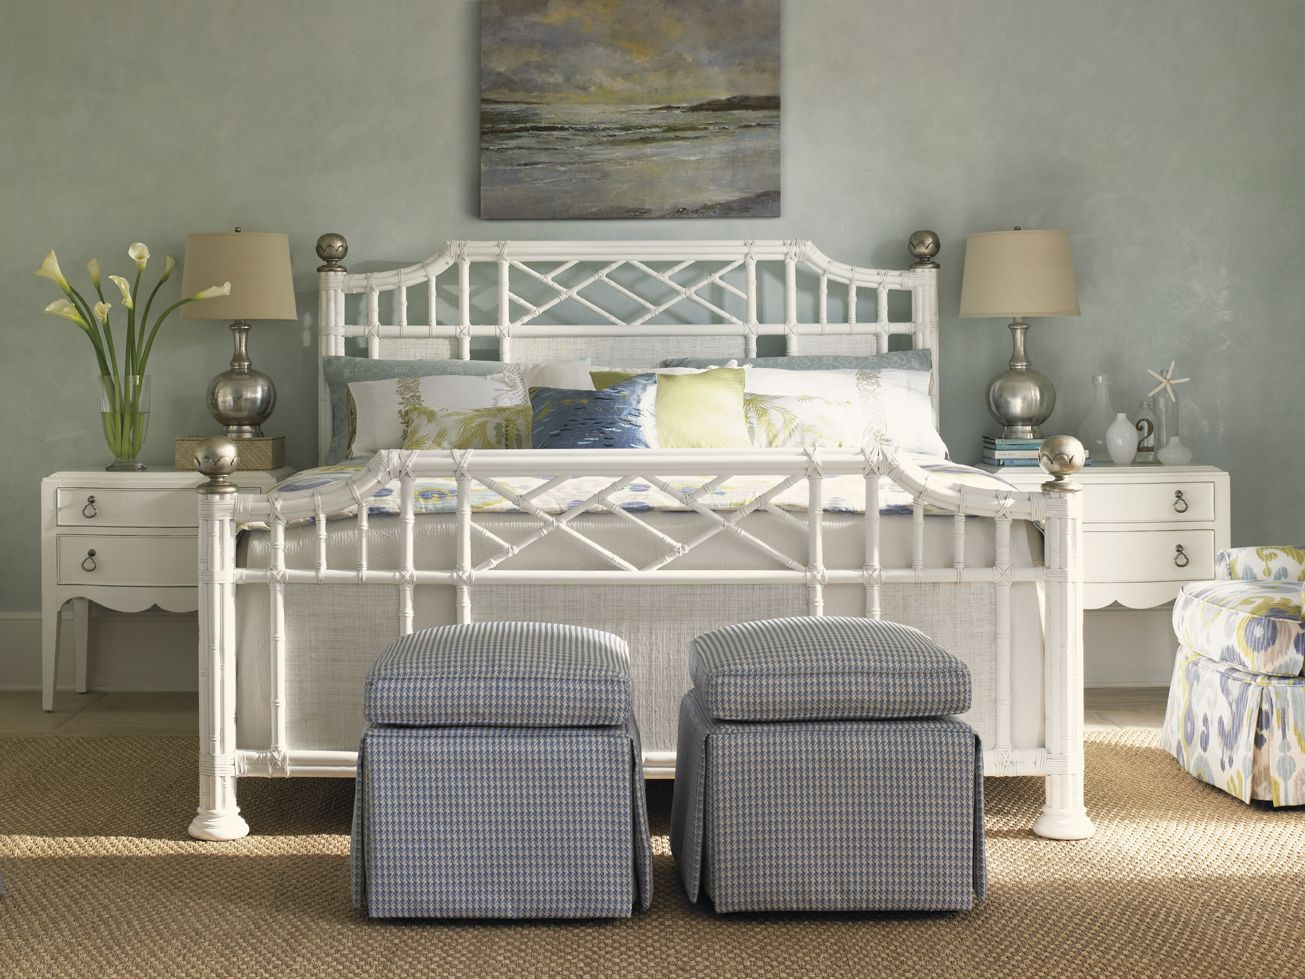 bed focal point